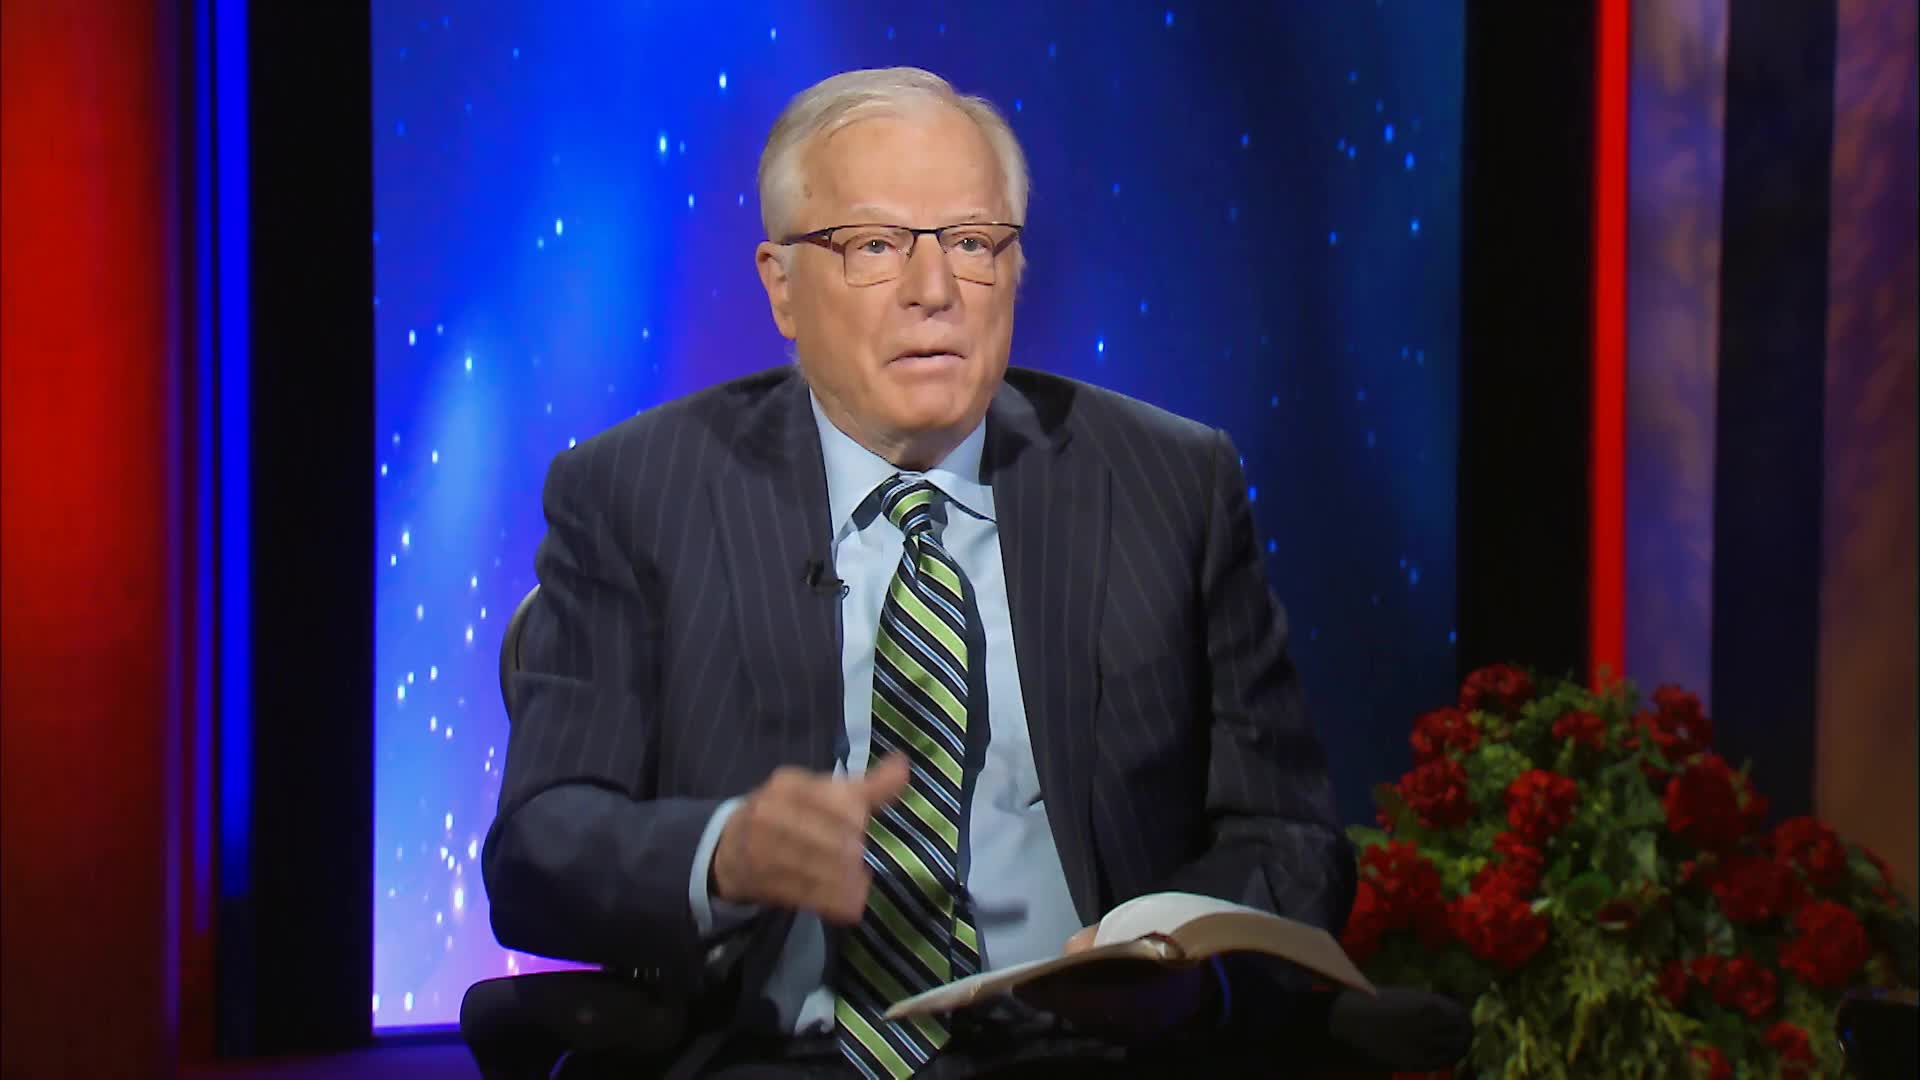 How You Can Be Sure You Will Spend Eternity With God – Part 2 - Program 1